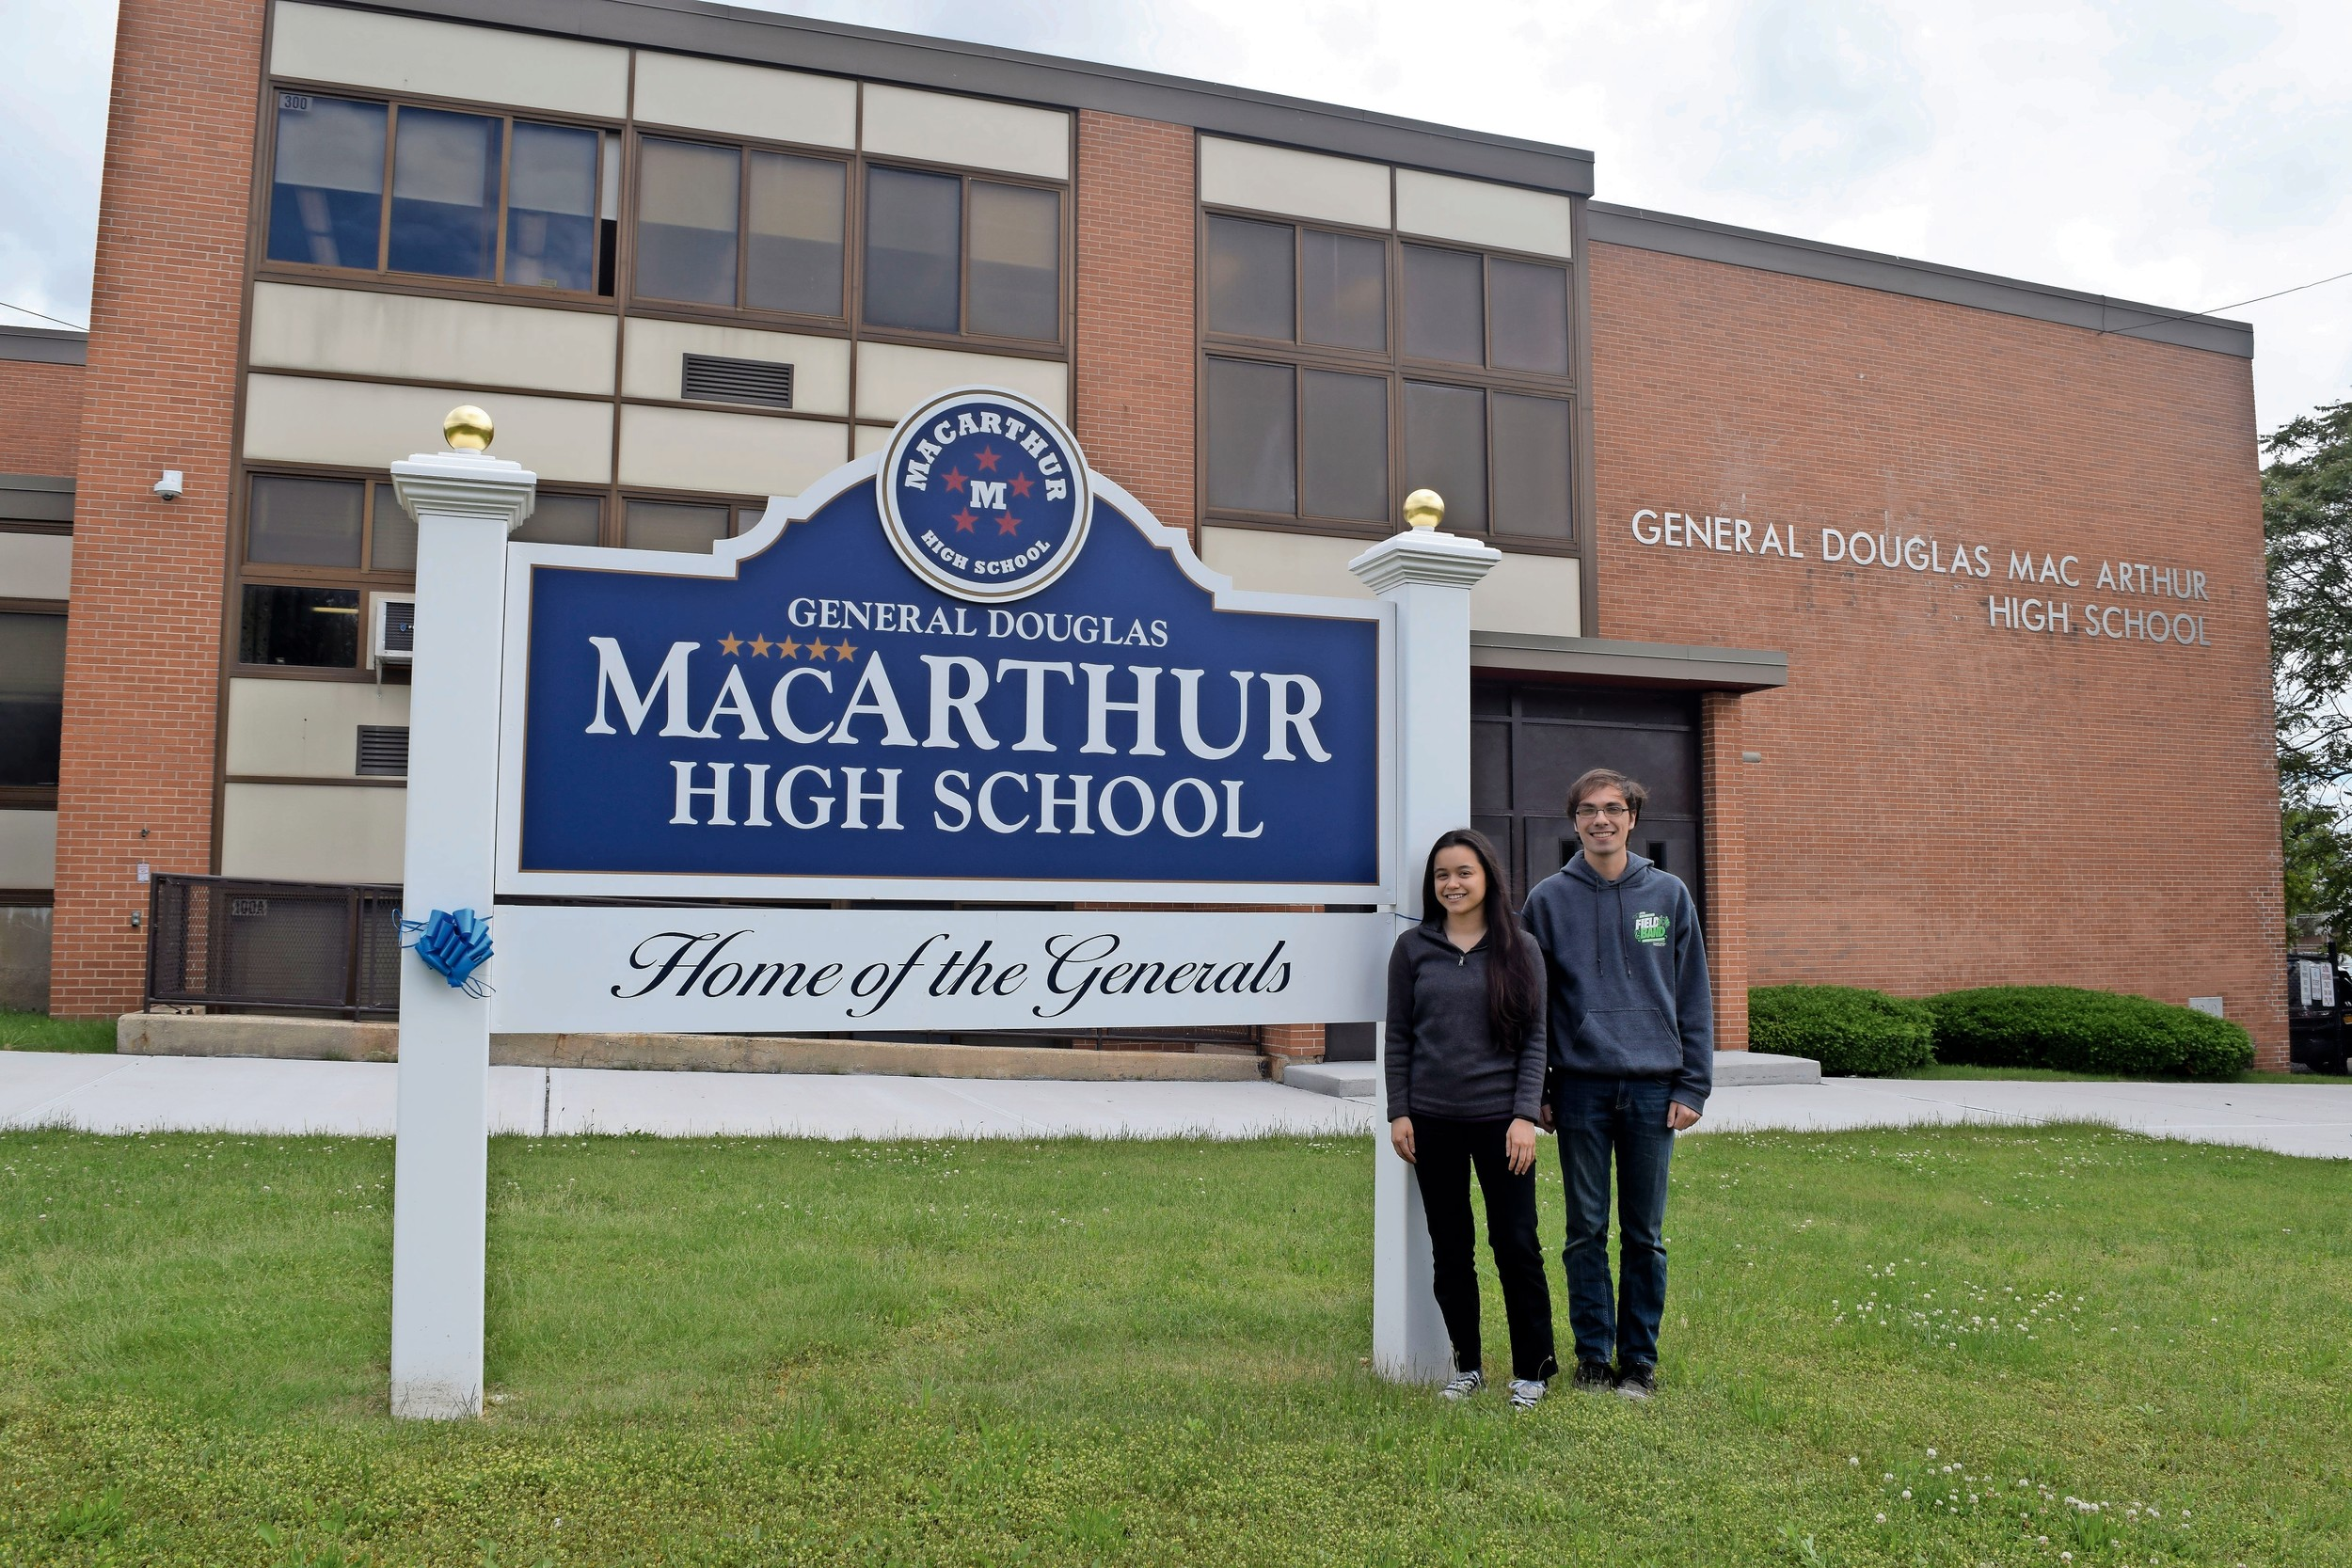 Casey Butcher and James May are the valedictorian and salutatorian of MacArthur High School's class of 2017.